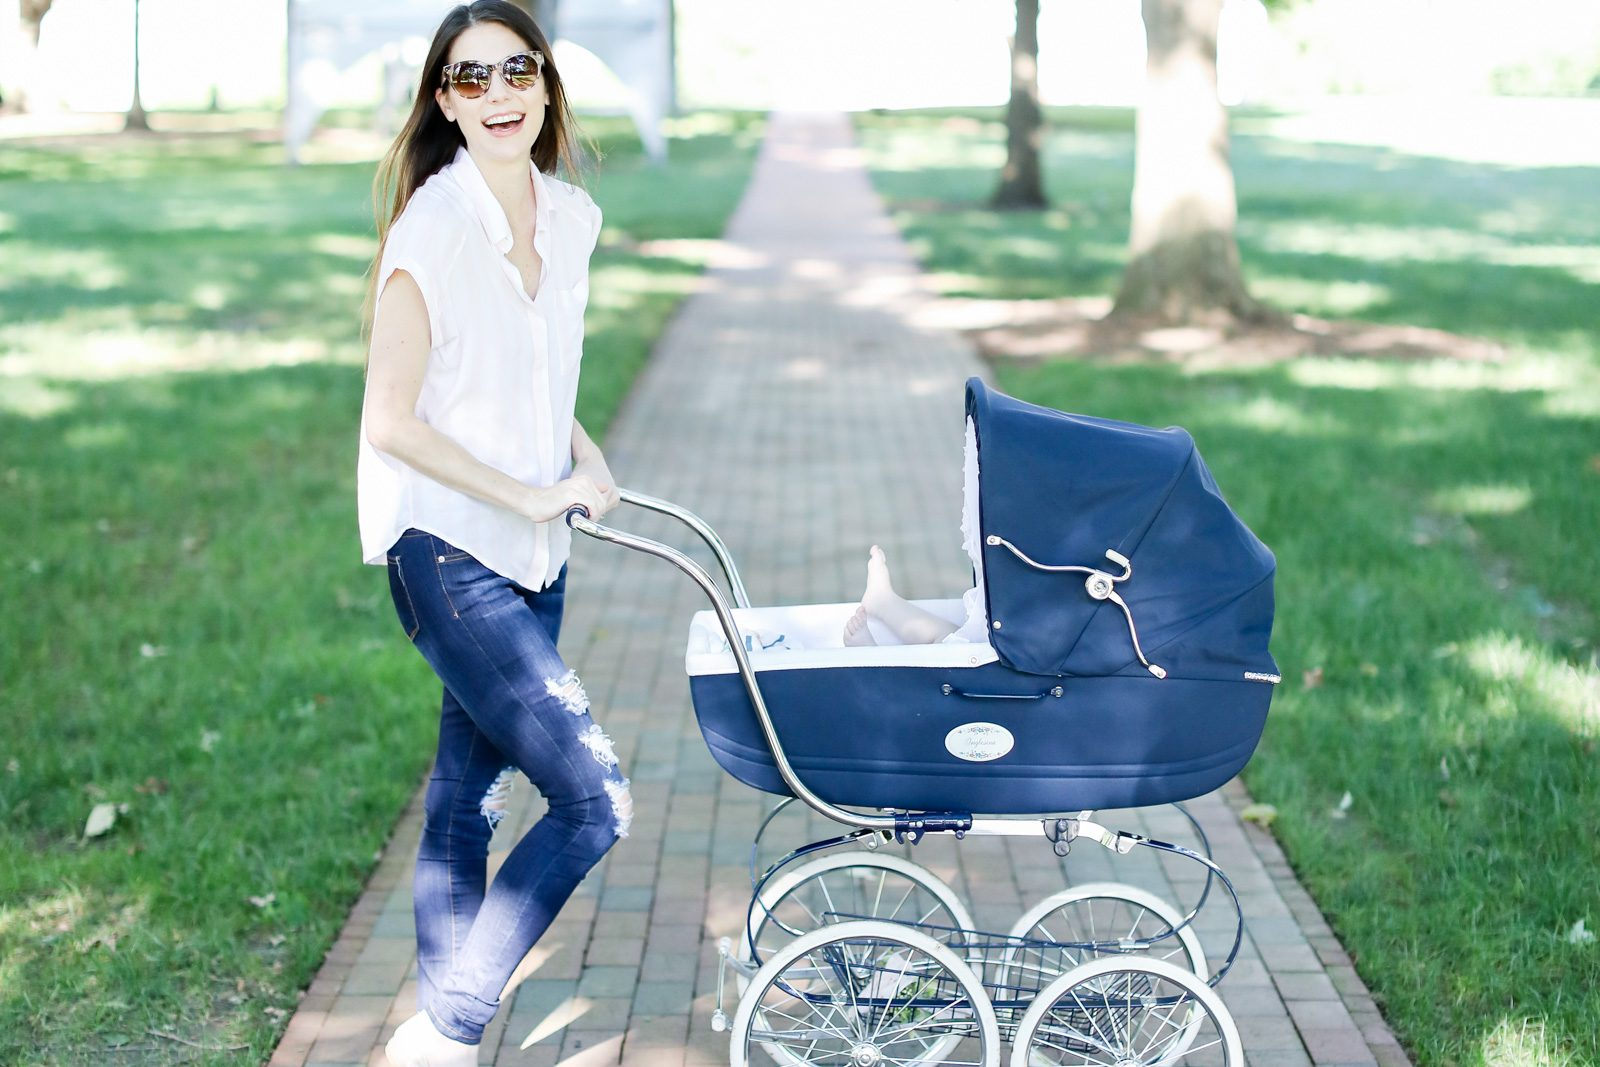 What's in Your Stroller? | My Favorite Stroller and Accessories